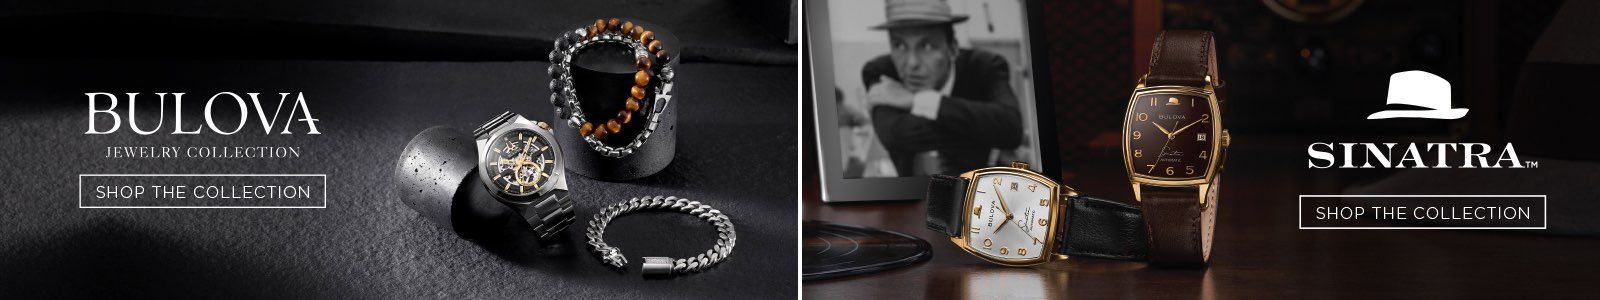 Bulova Jewelry Collection, Shop The Collection, Sinatra, Shop The Collection